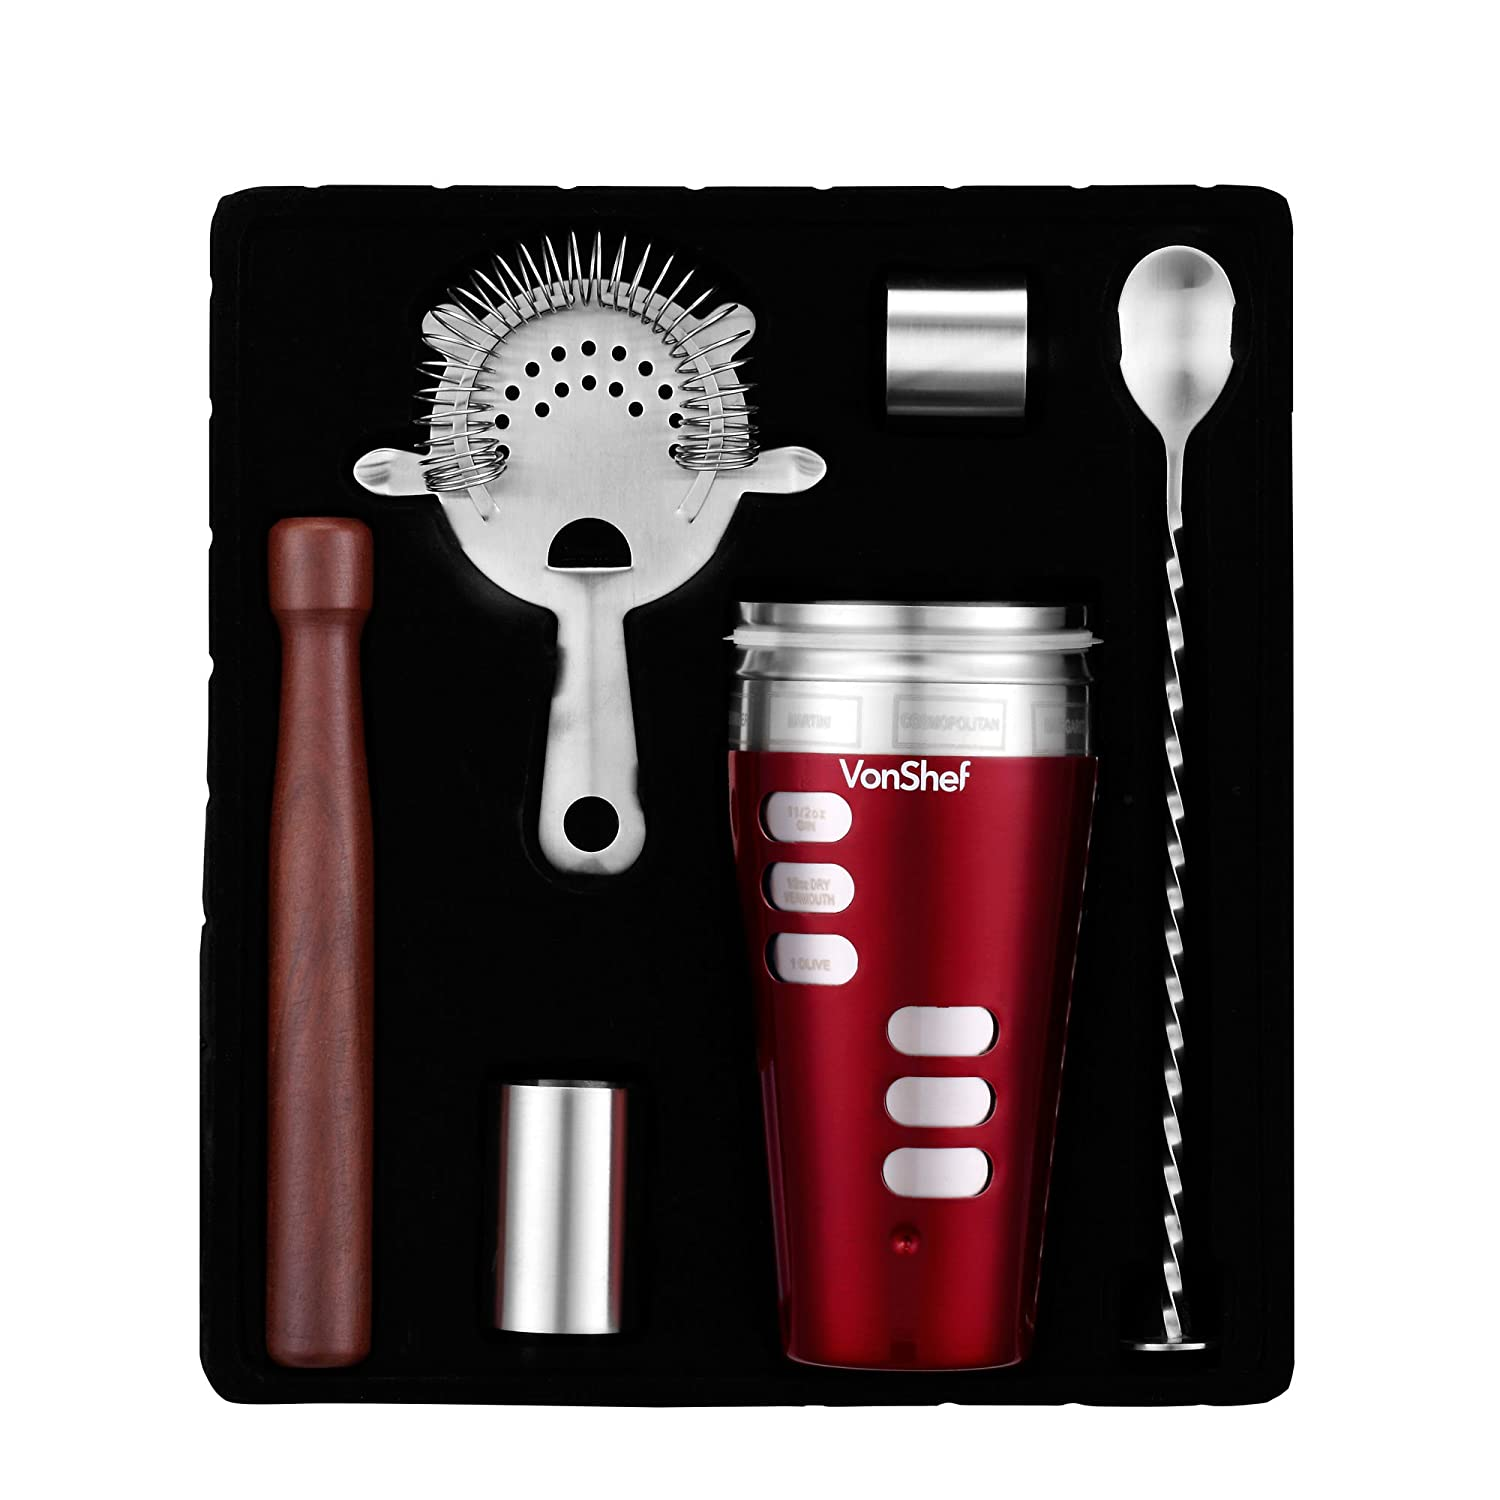 amazoncom vonshef engraved recipe cocktail shaker set in red  - amazoncom vonshef engraved recipe cocktail shaker set in red  includesfree strainer spoon wood muddler  x measuring cups  engraved cocktail